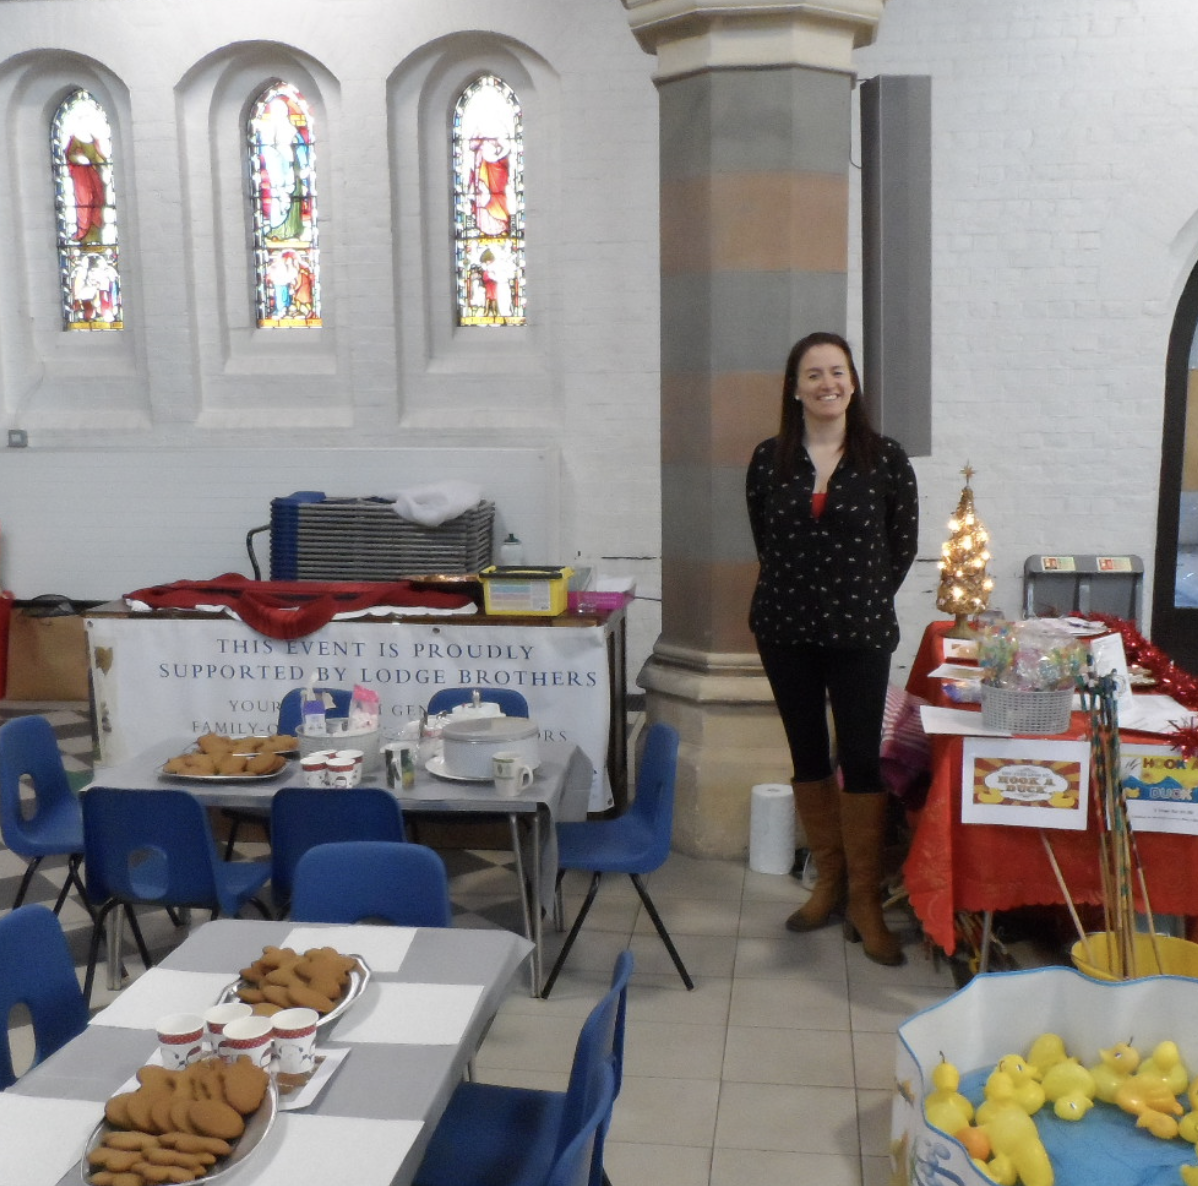 Lodge Brothers at St Andrew's Church Christmas Fair